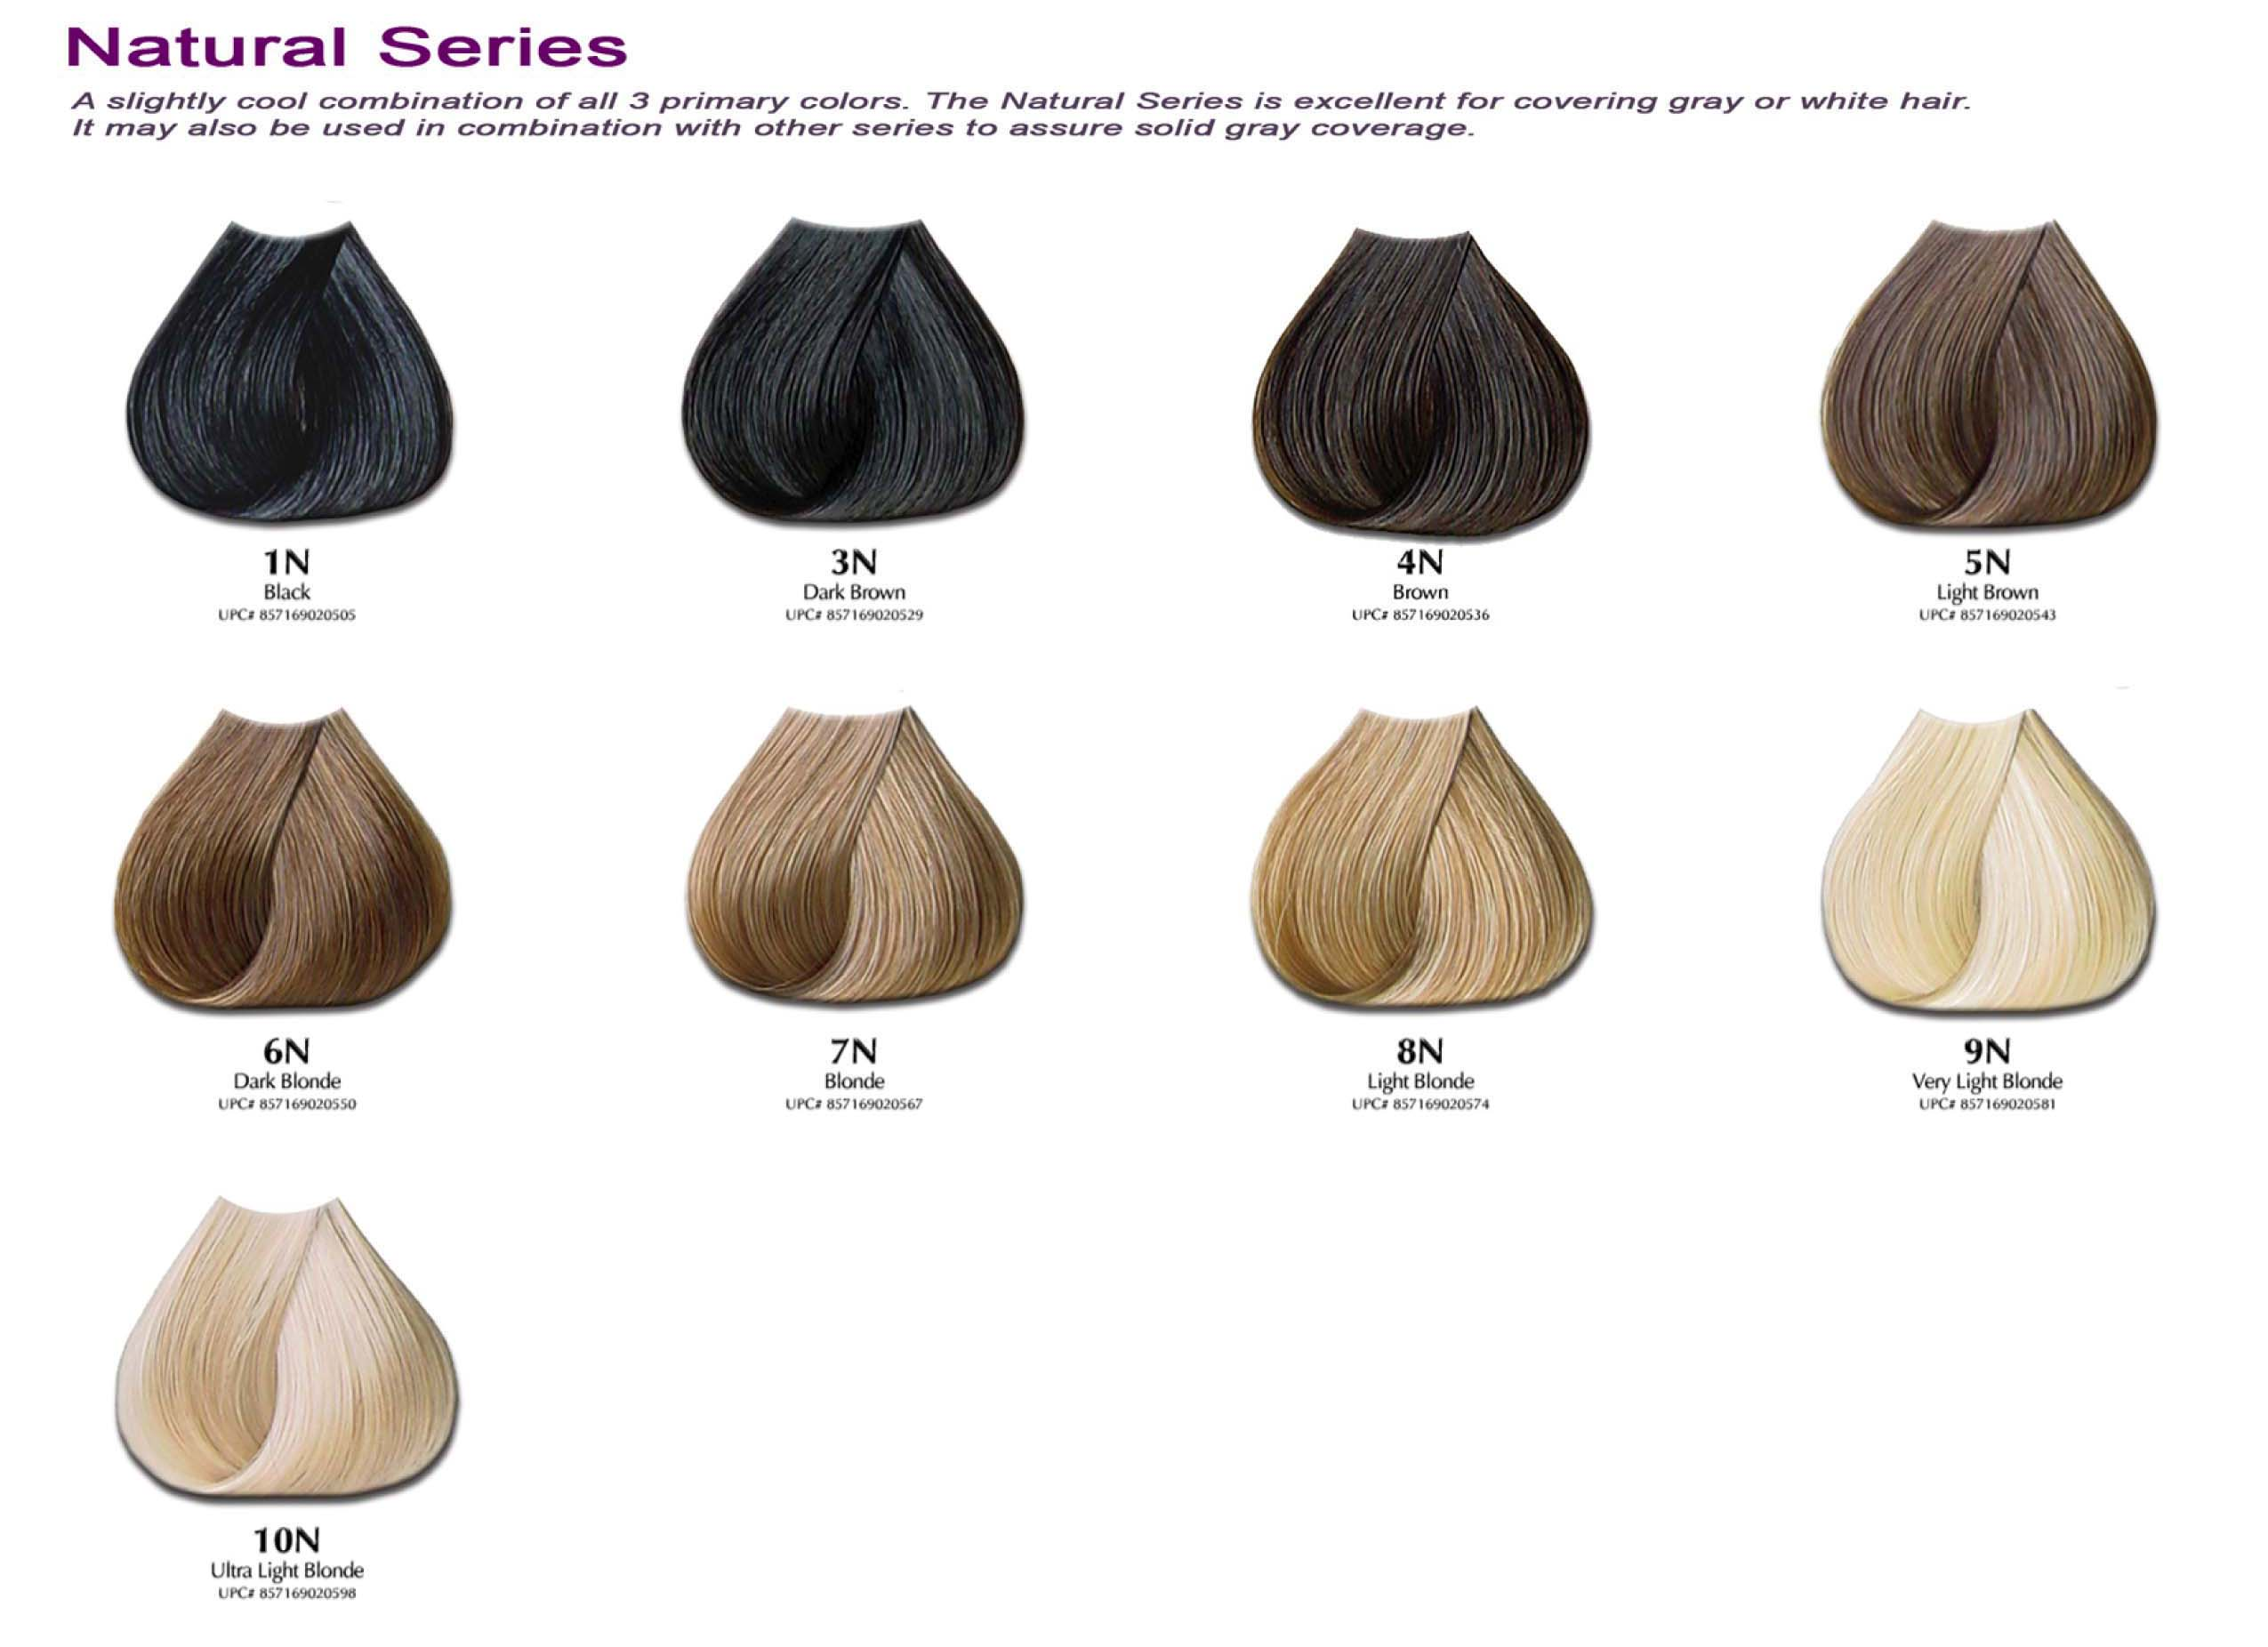 Satin Hair Colors Buy Online YSB Beauty